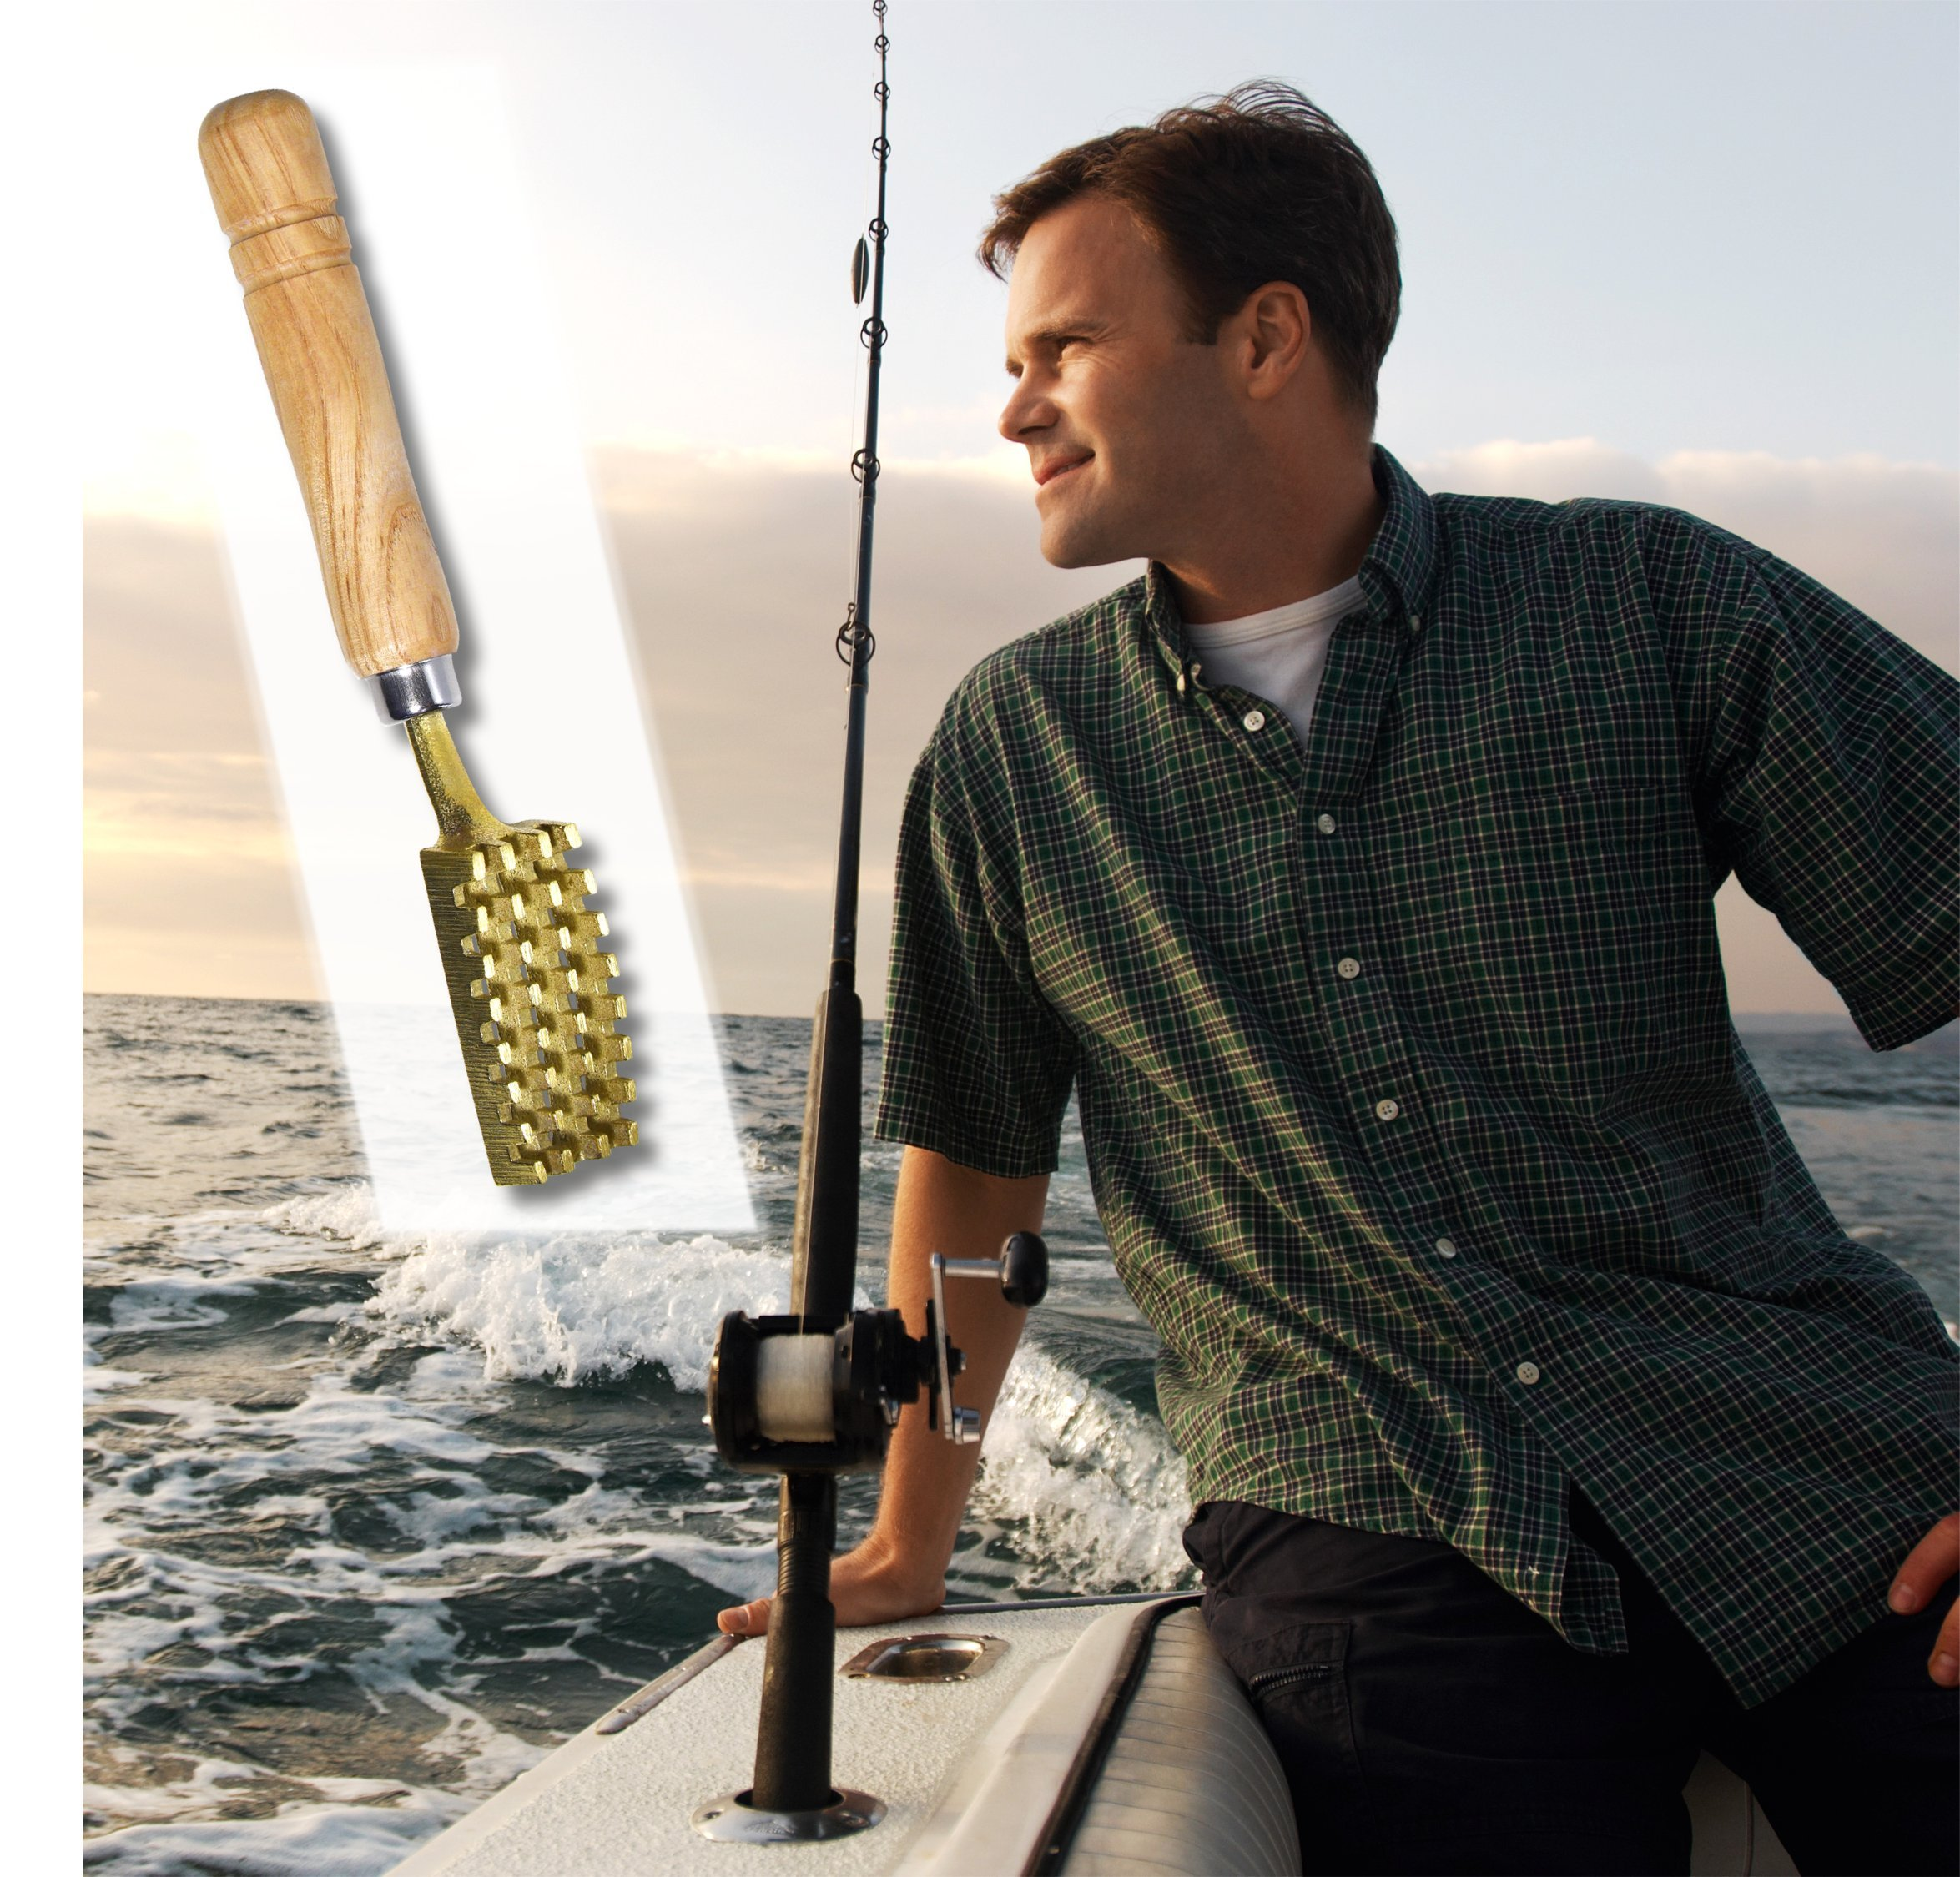 Kwizing Made in Japan Fish Scaler Brush with Brass Serrated Sawtooth and Ergonomic Wooden Handle - Easily Remove Fish Scales Without Fuss Or Mess - Handcrafted by Japanese Artisans by Kwizing (Image #4)